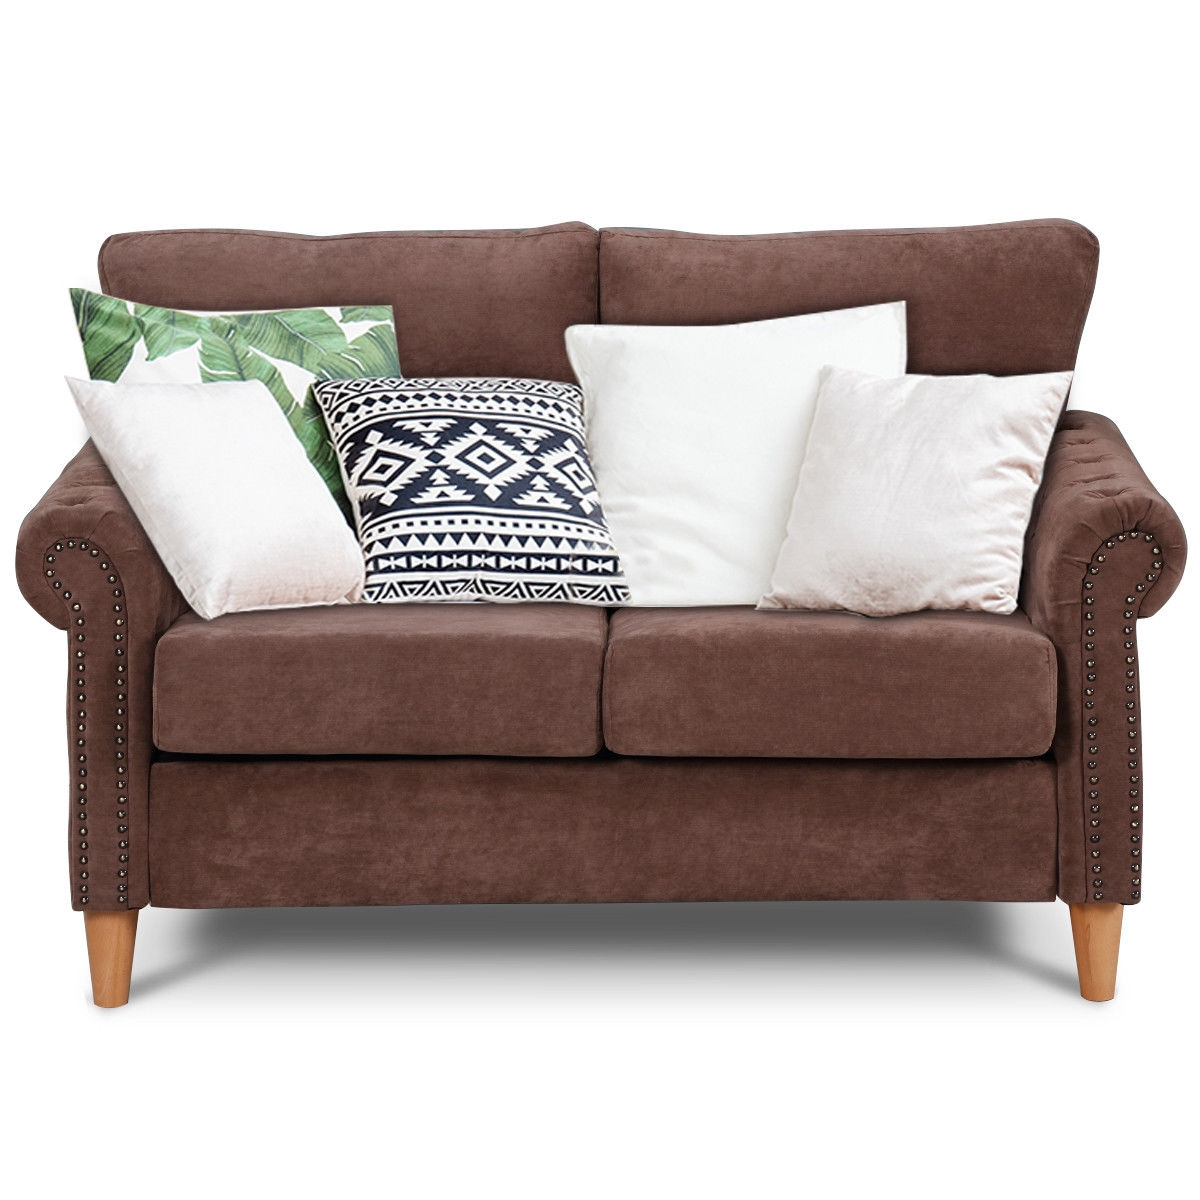 Modern Upholstered 2-Seater Nailhead Linen Fabric Sofa-Brown